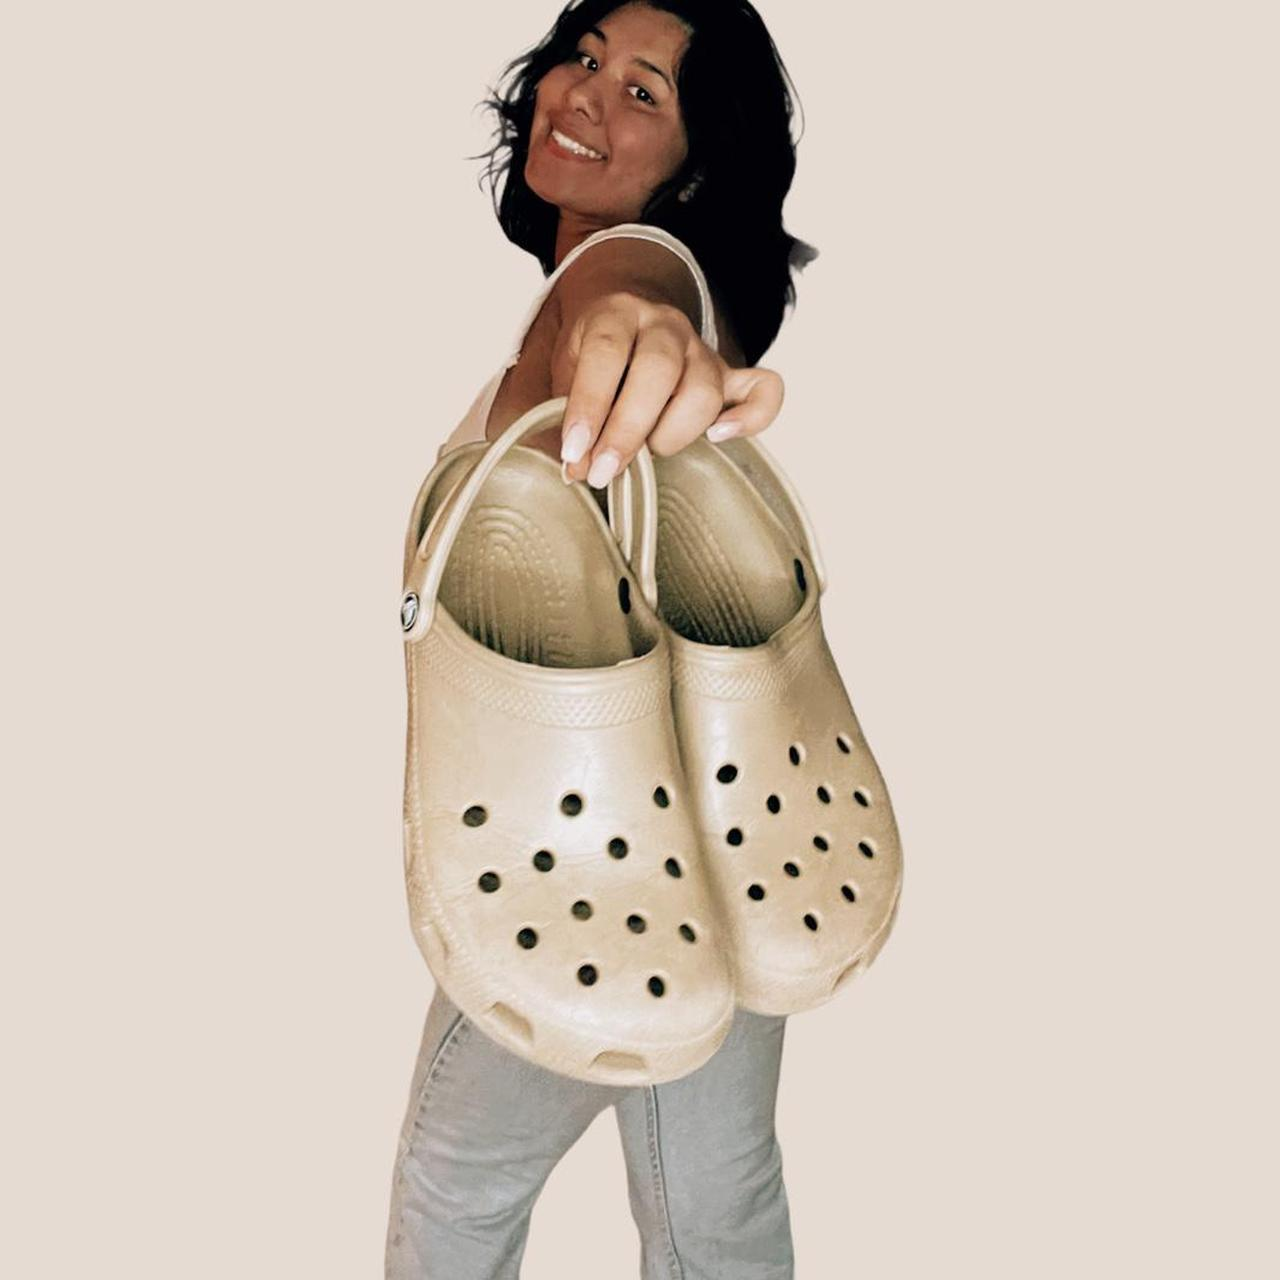 Product Image 1 - TAN CROCS  Size 8 in woman's